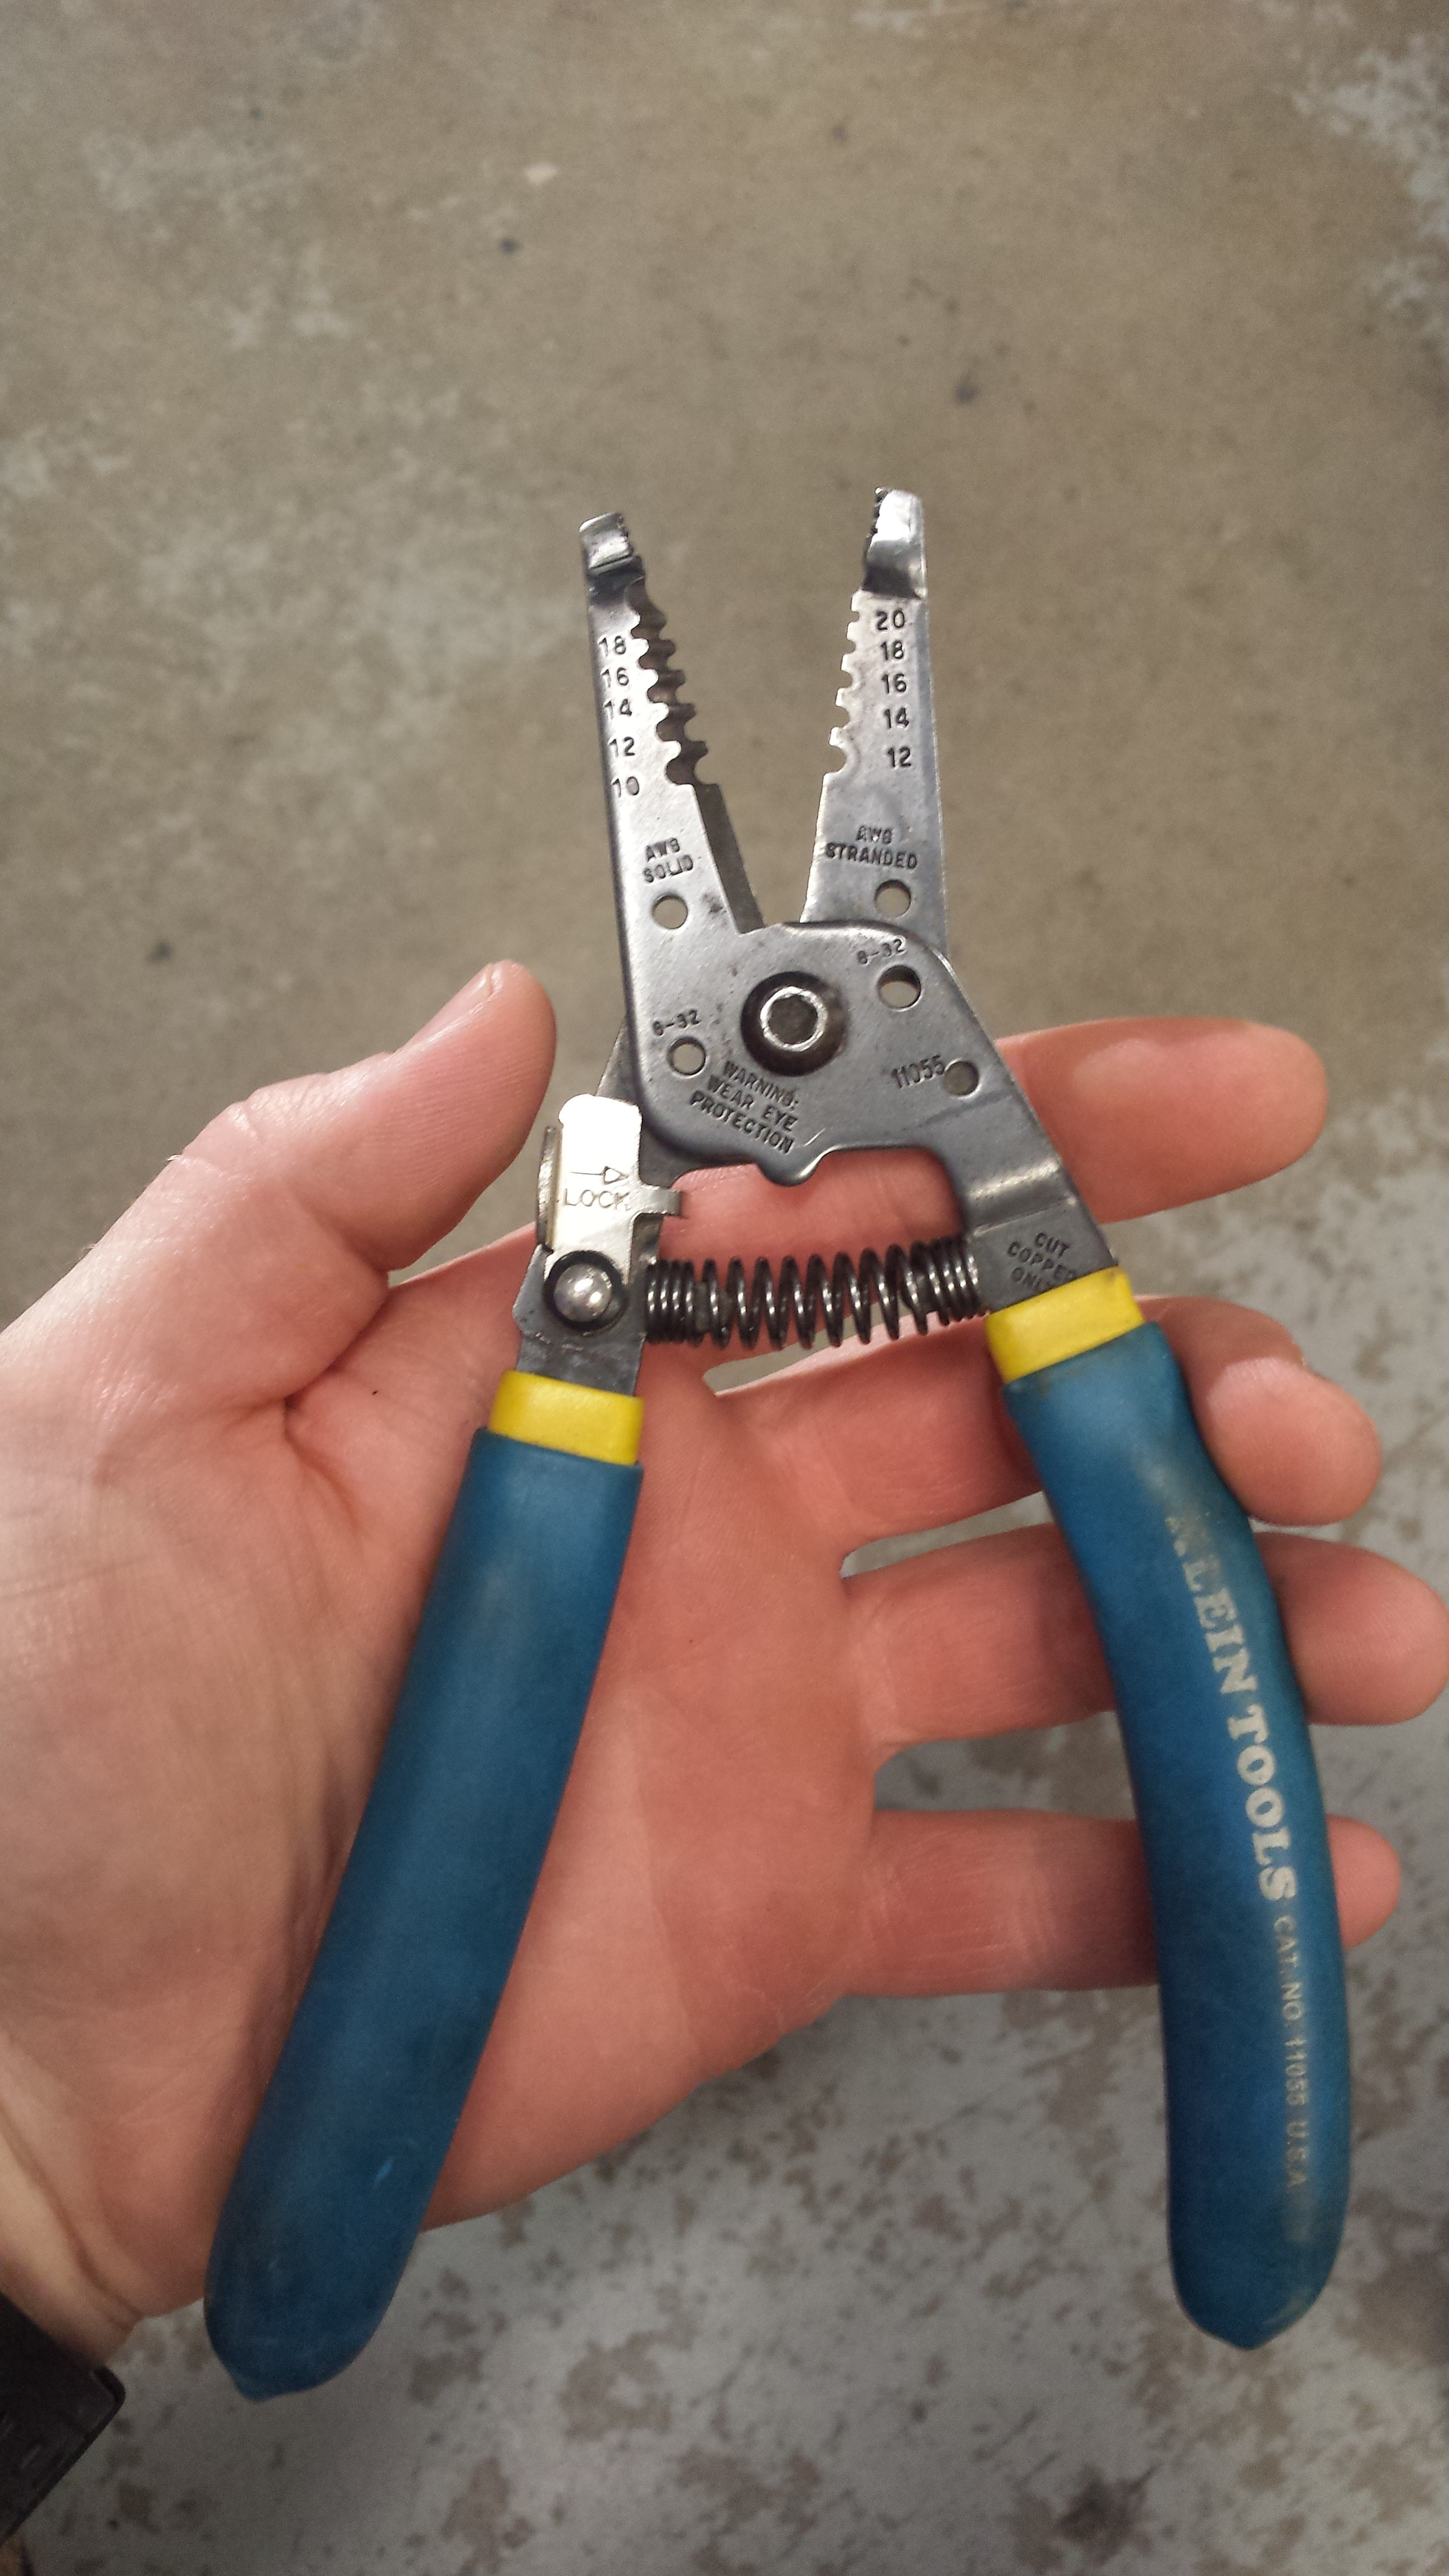 Electrician Apprentice Tools Guide Eahq Wiring And Function Strips 10 20 Gauge Wire Cuts Screws Loops Great Tool